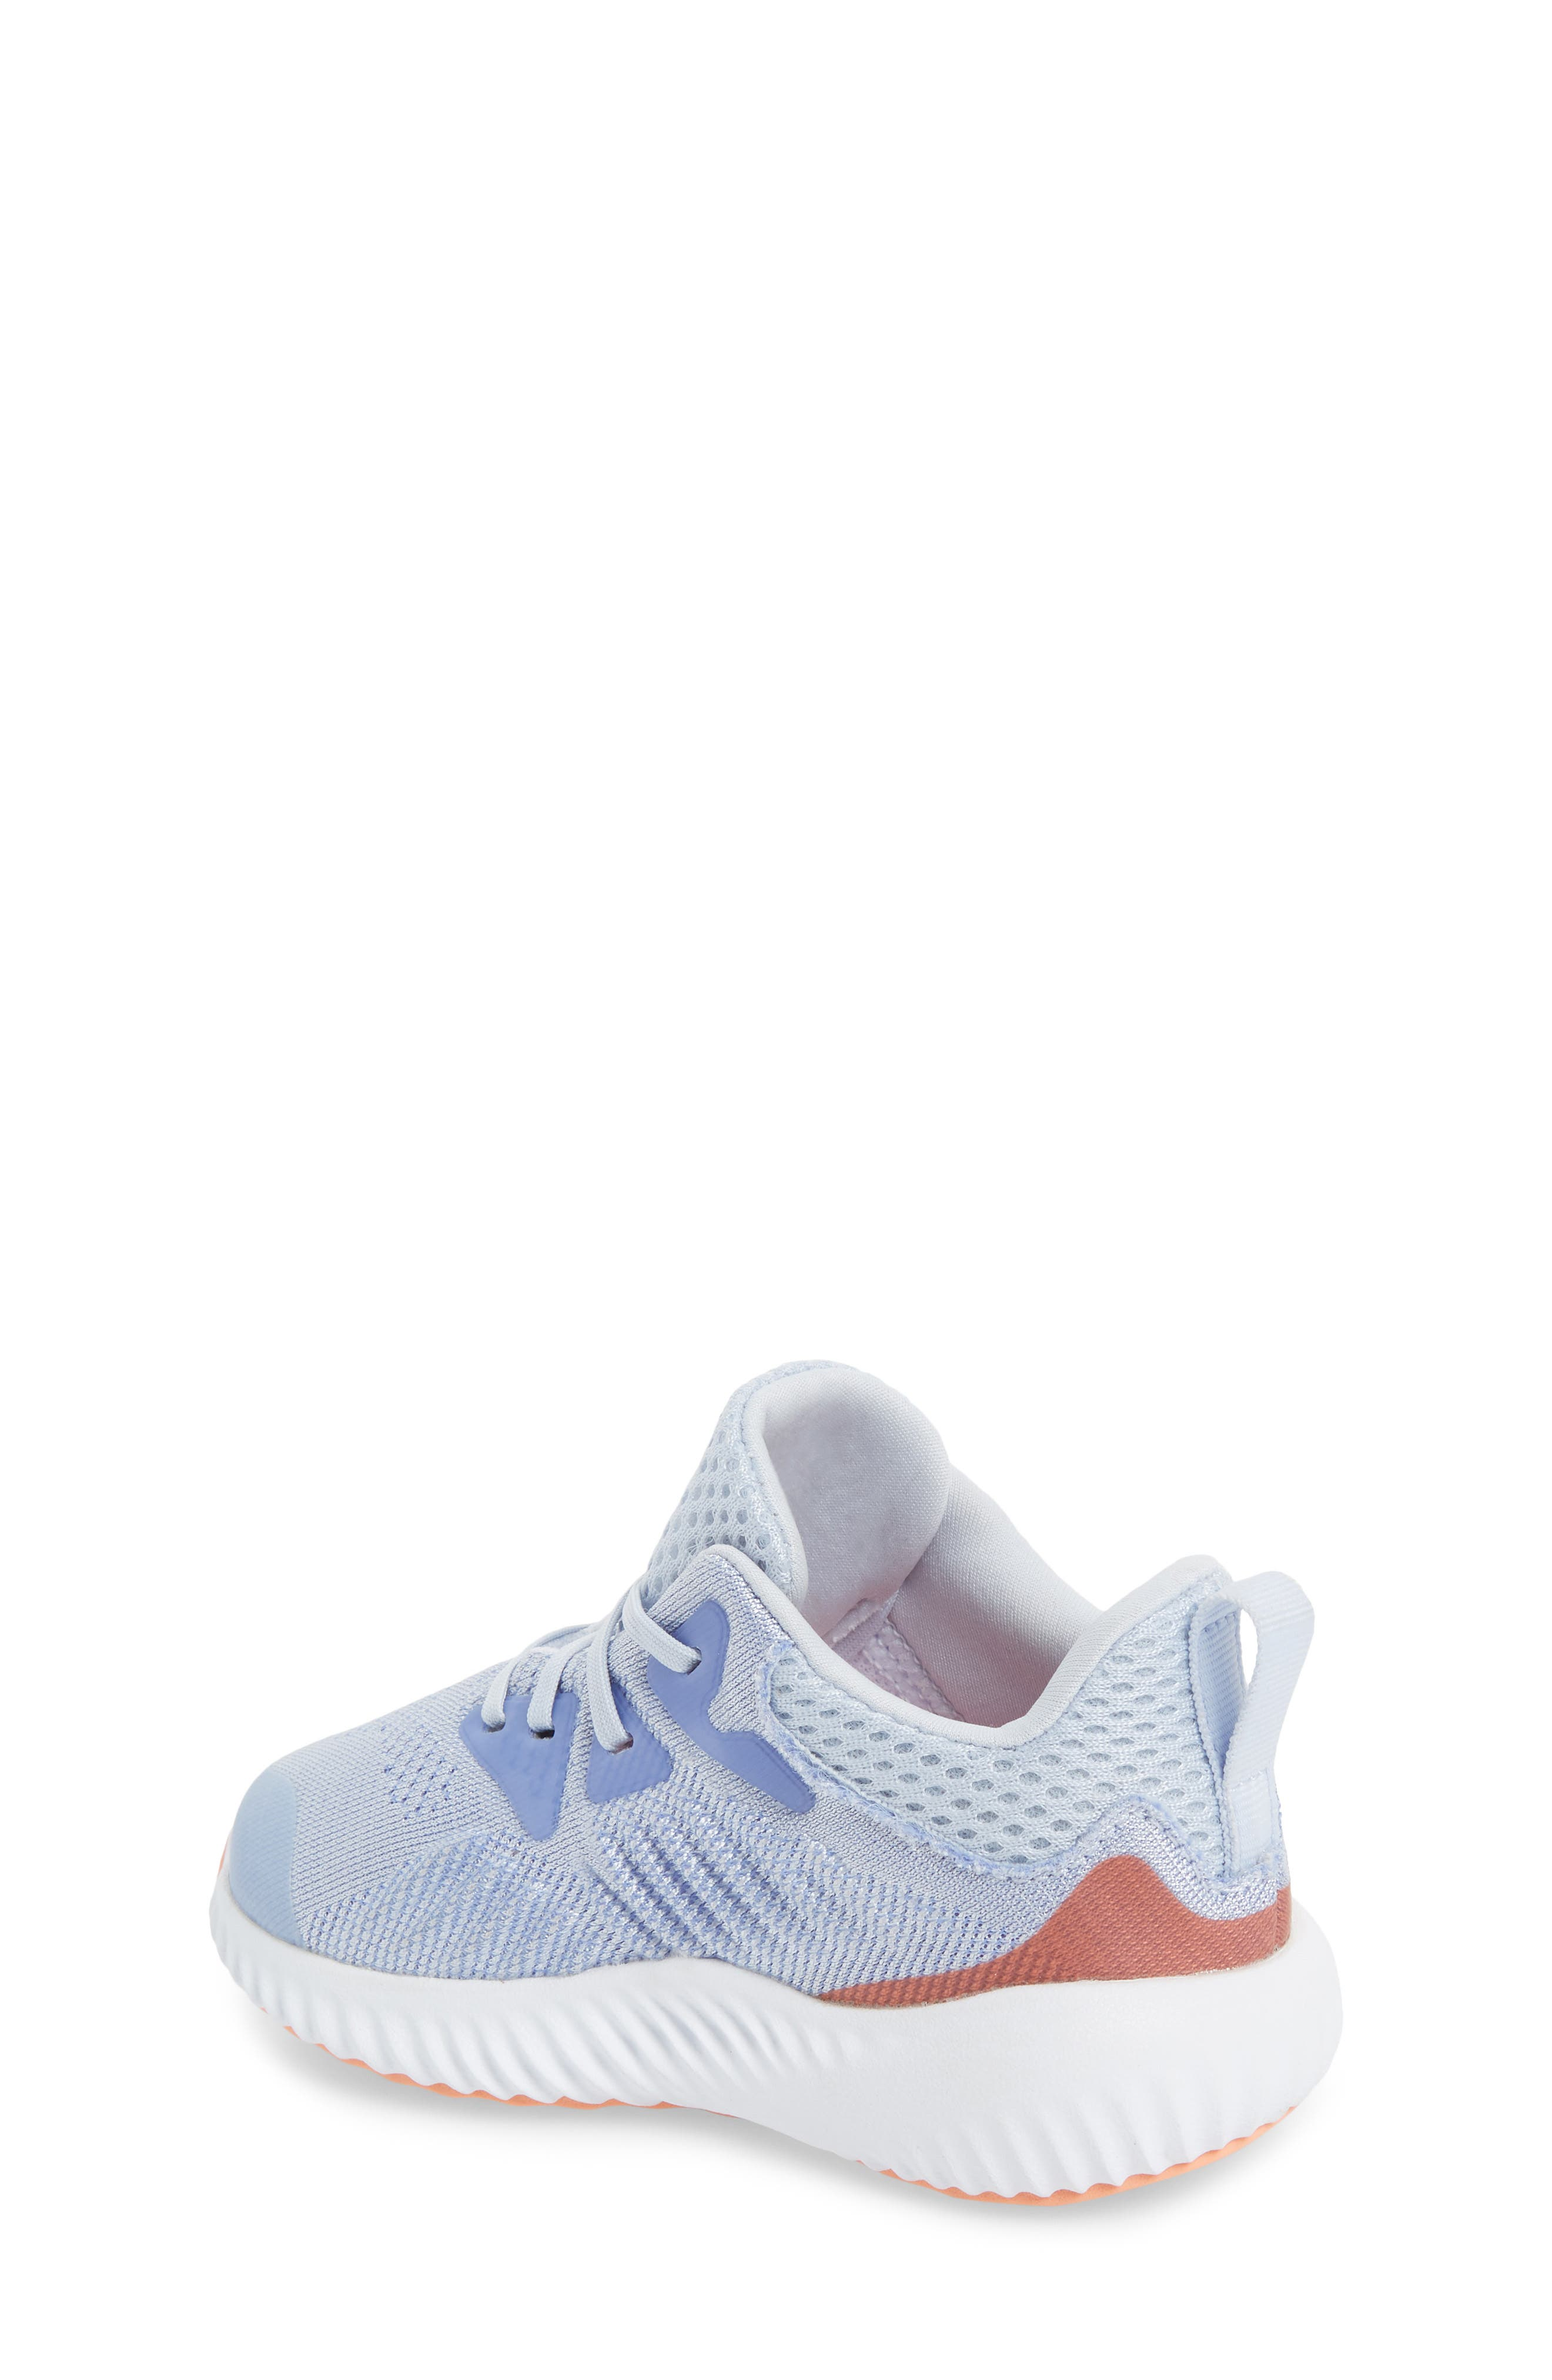 AlphaBounce Beyond Running Shoe,                             Alternate thumbnail 2, color,                             Blue/ Chalk Purple/ White